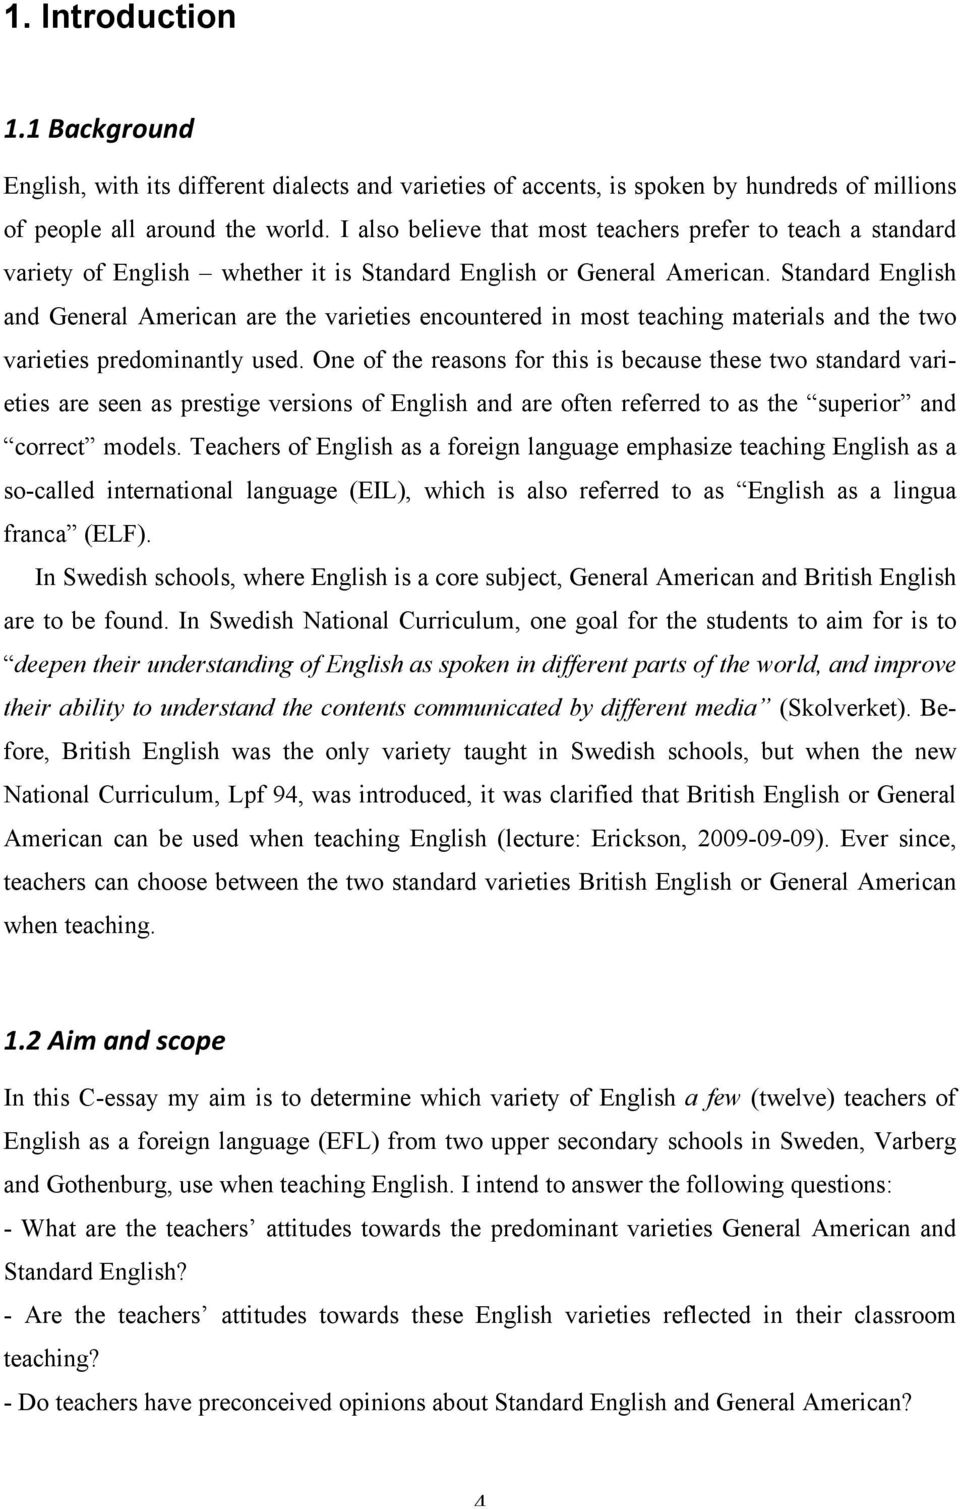 Standard English and General American are the varieties encountered in most teaching materials and the two varieties predominantly used.